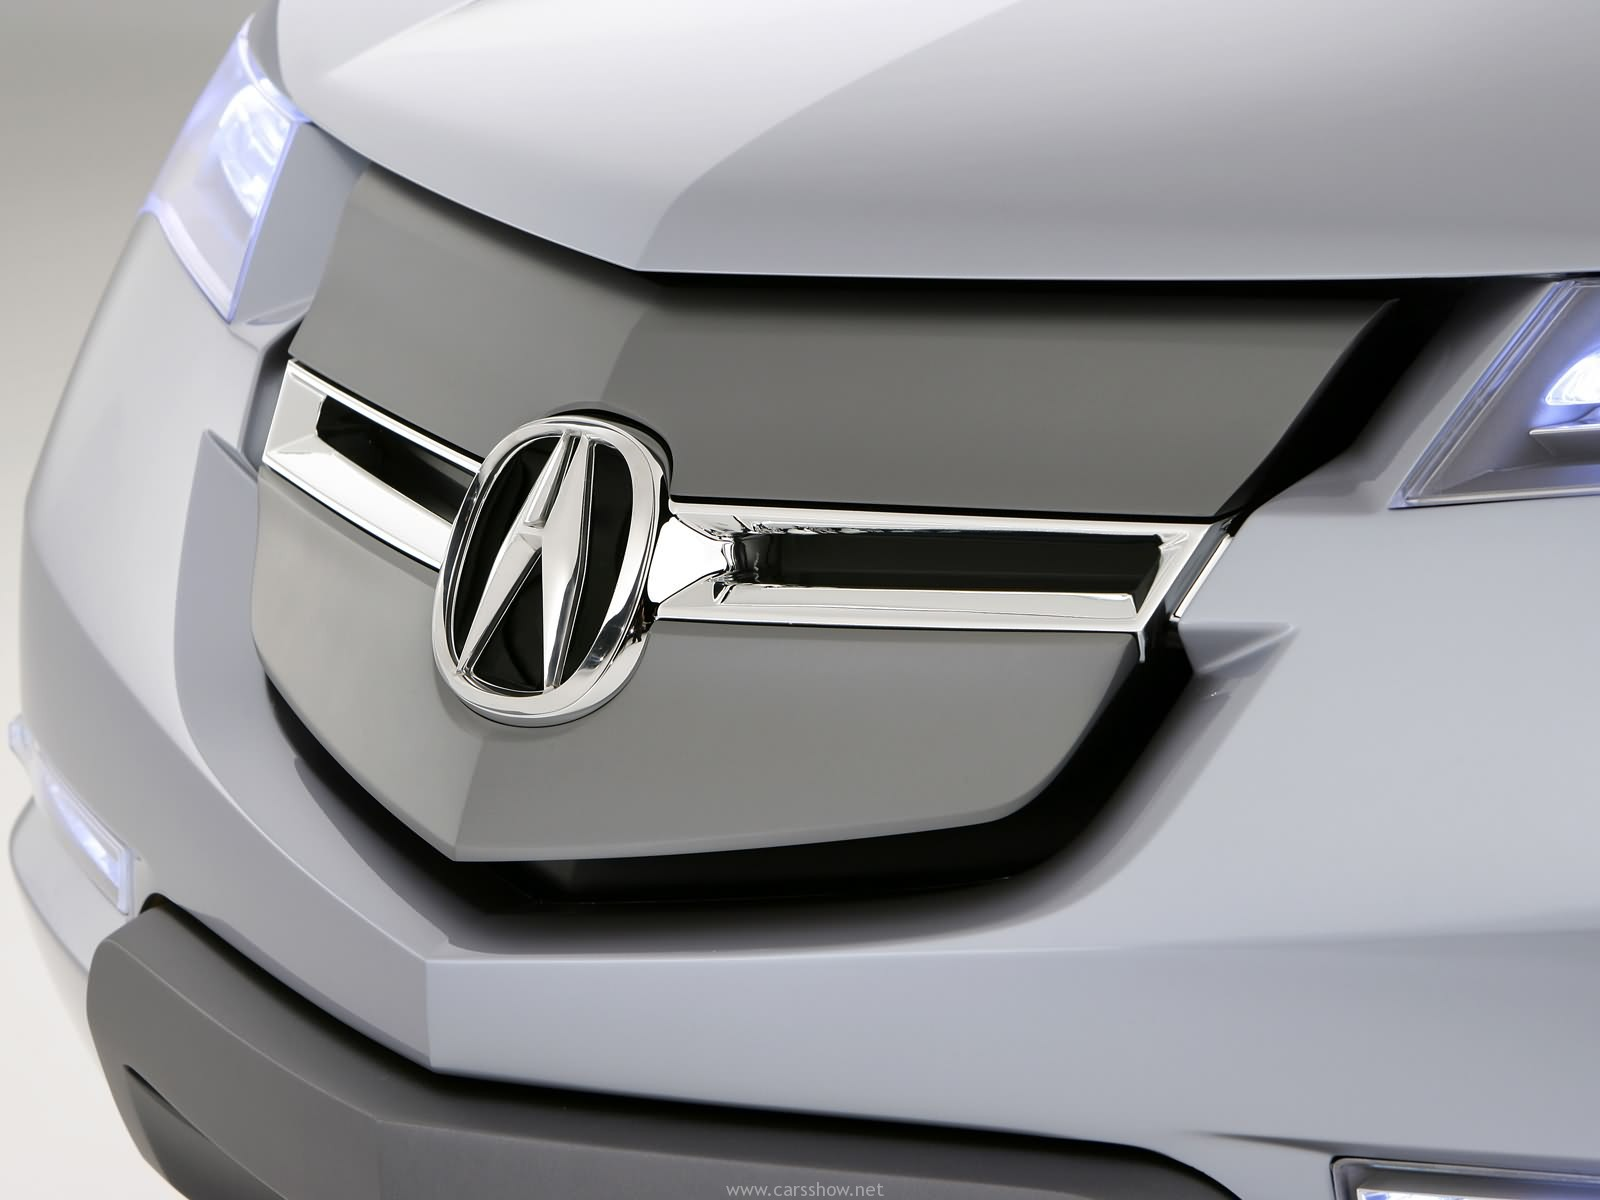 acura logo car wallpapers download Desktop Backgrounds for HD 1600x1200